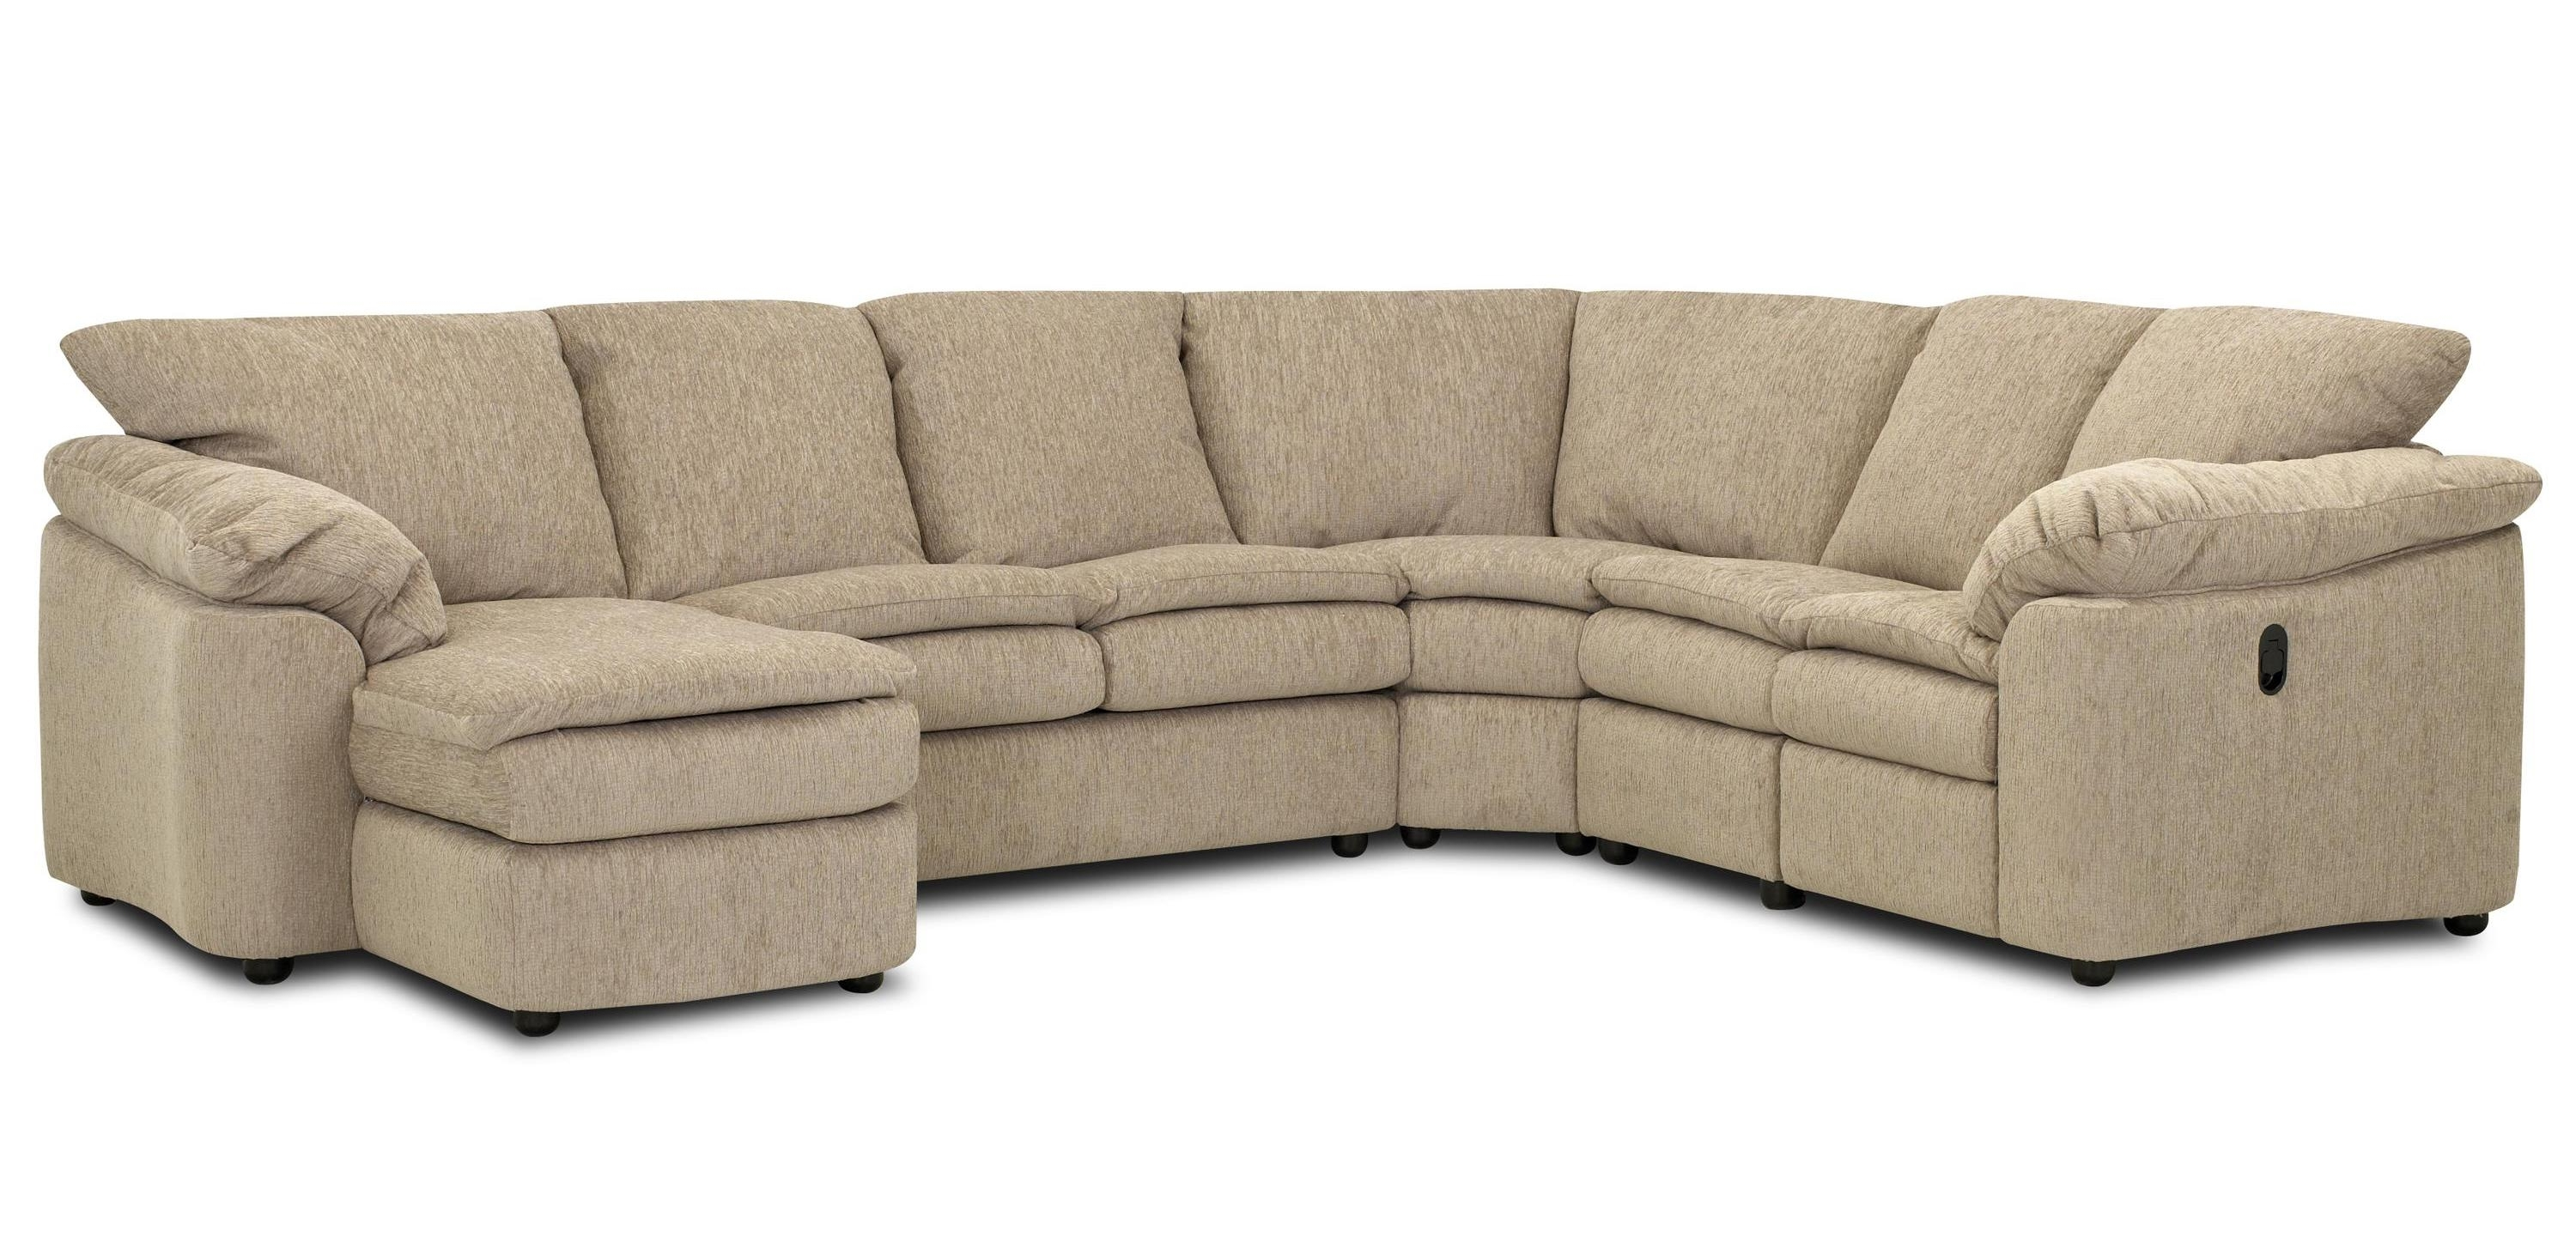 Klaussner Legacy Dual Reclining Left Arm Loveseat, Sleeper And With Regard To Well Known Dual Chaise Sectionals (View 14 of 15)